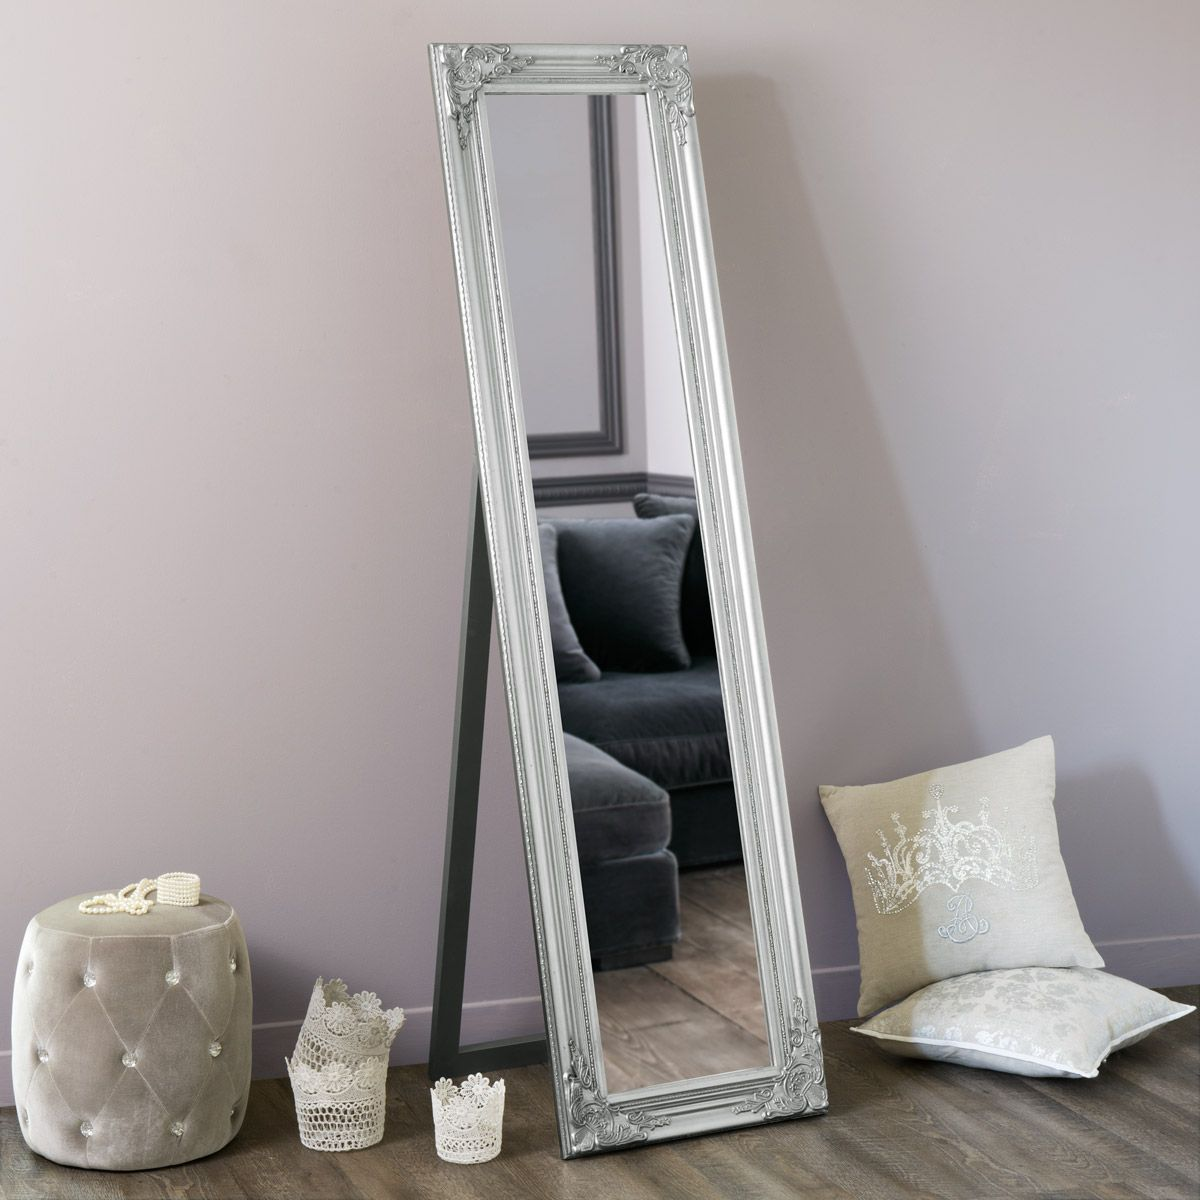 miroir psych argent h 164 cm wishlist house mirror bedroom et full length mirror stand. Black Bedroom Furniture Sets. Home Design Ideas